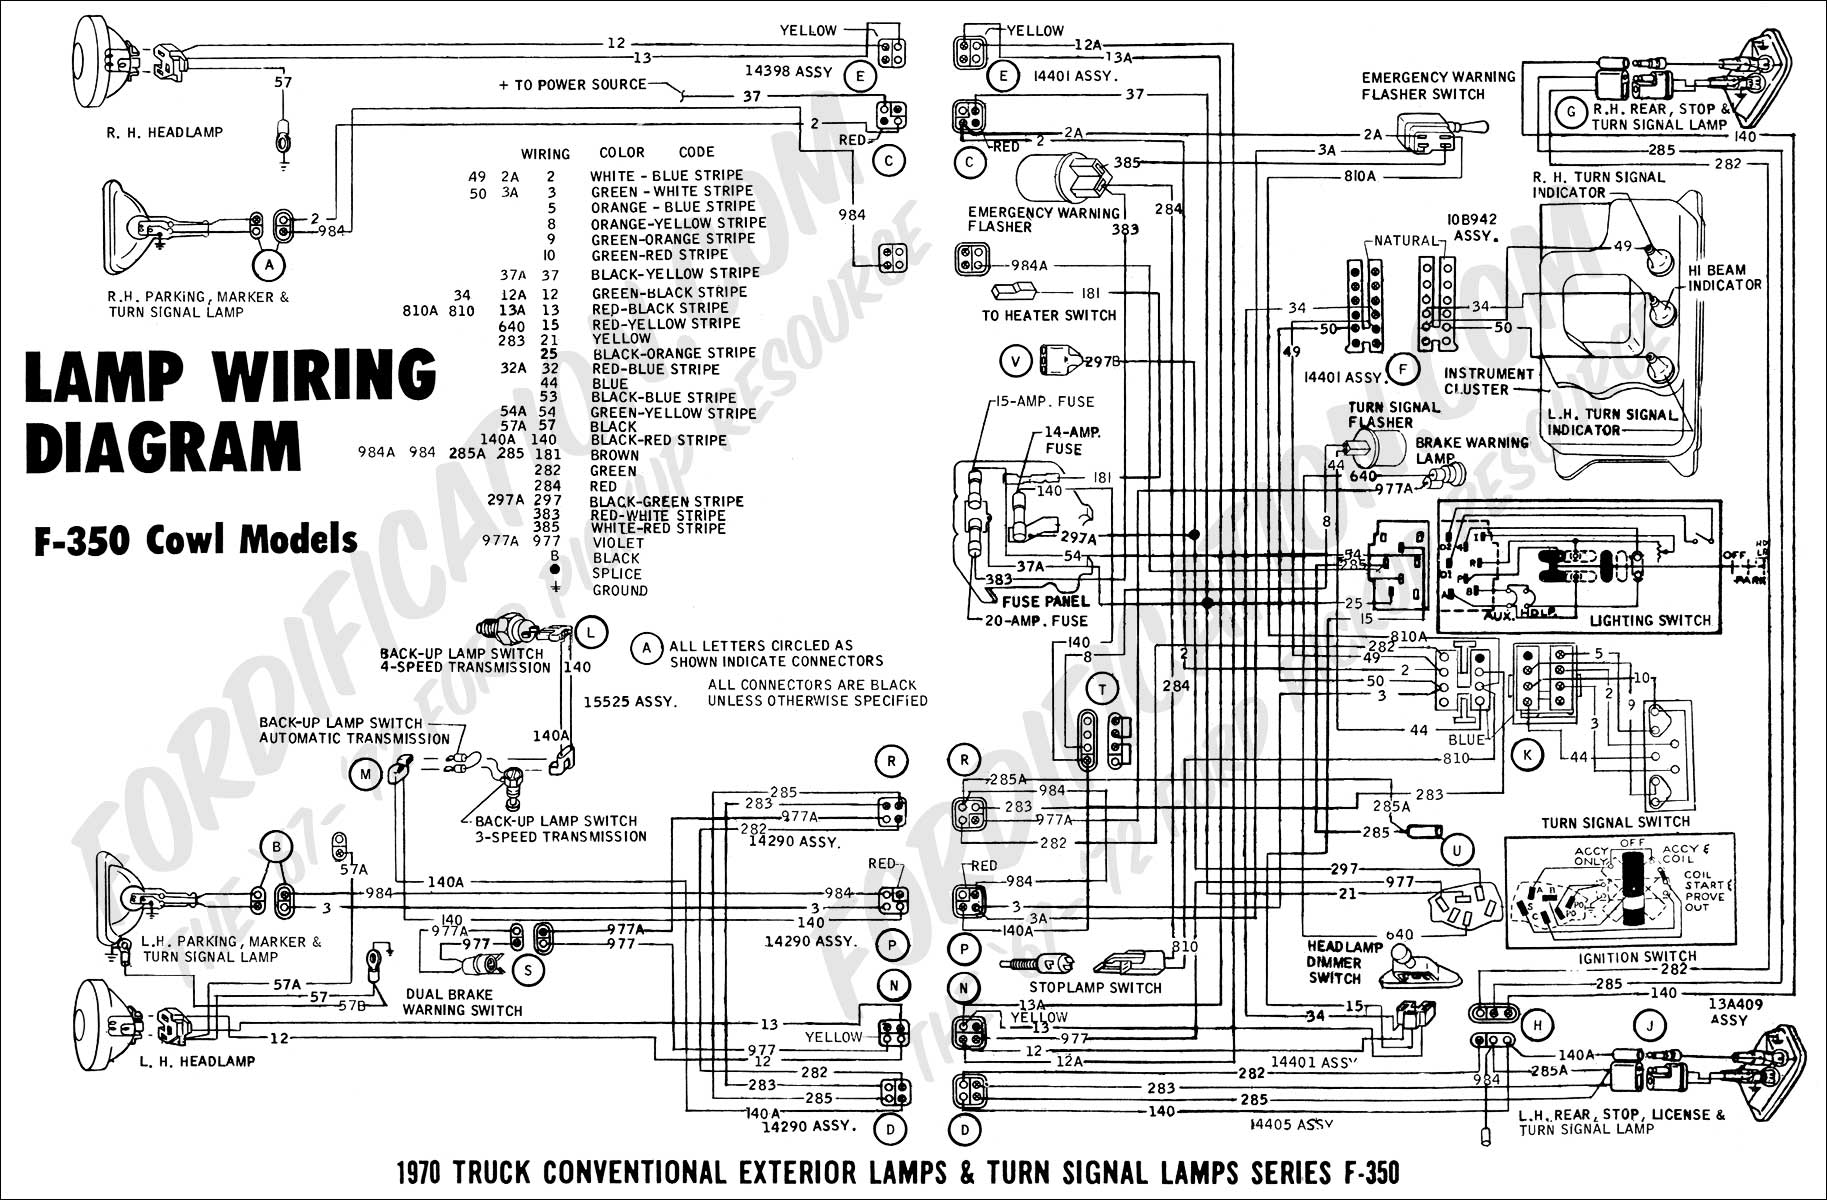 2001 Dodge Ram 1500 Trailer Wiring Diagram : Wiring diagram dodge ram ireleast readingrat